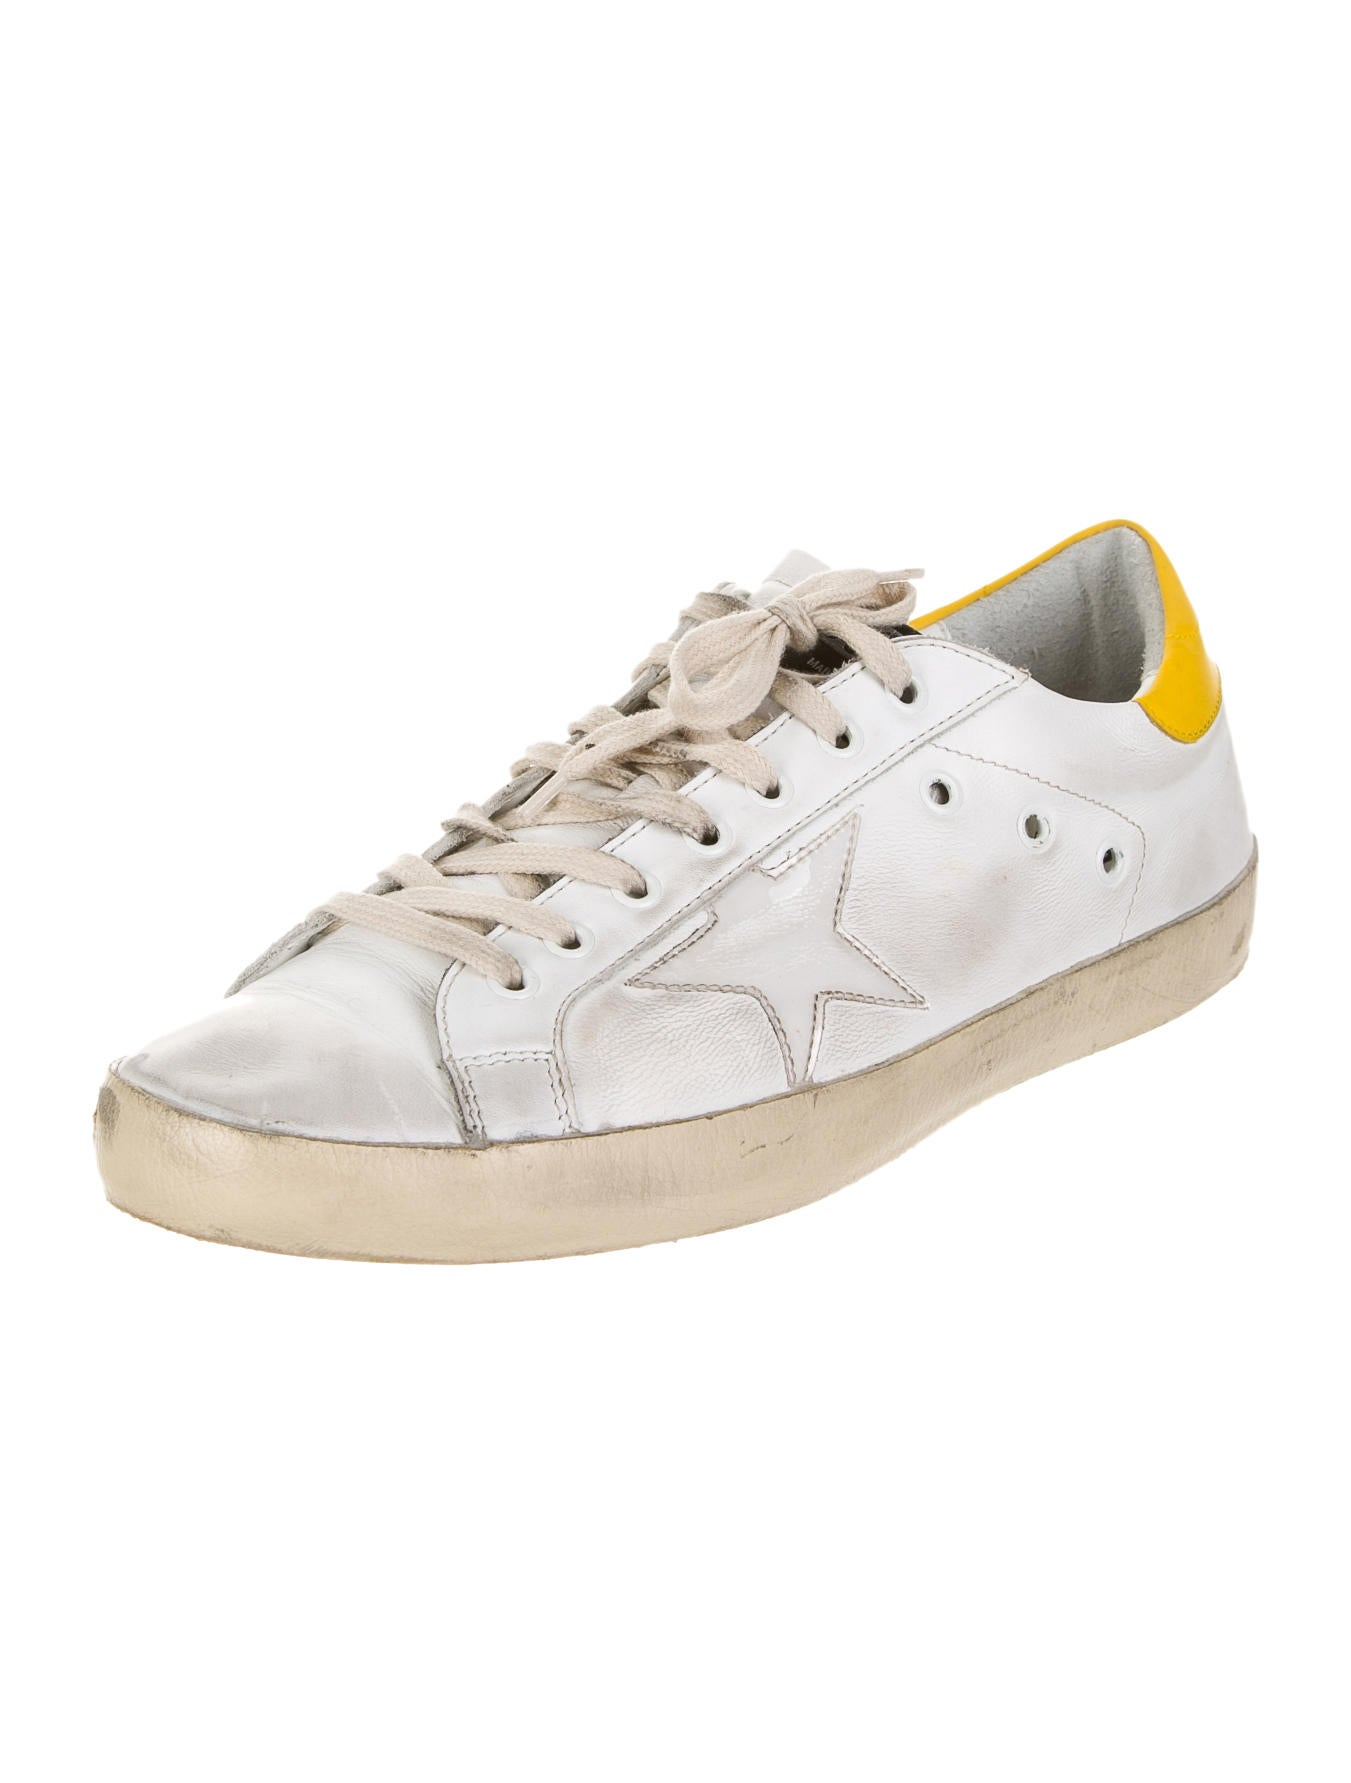 Golden Goose Sneakers - Shoes - WG520697 | The RealReal